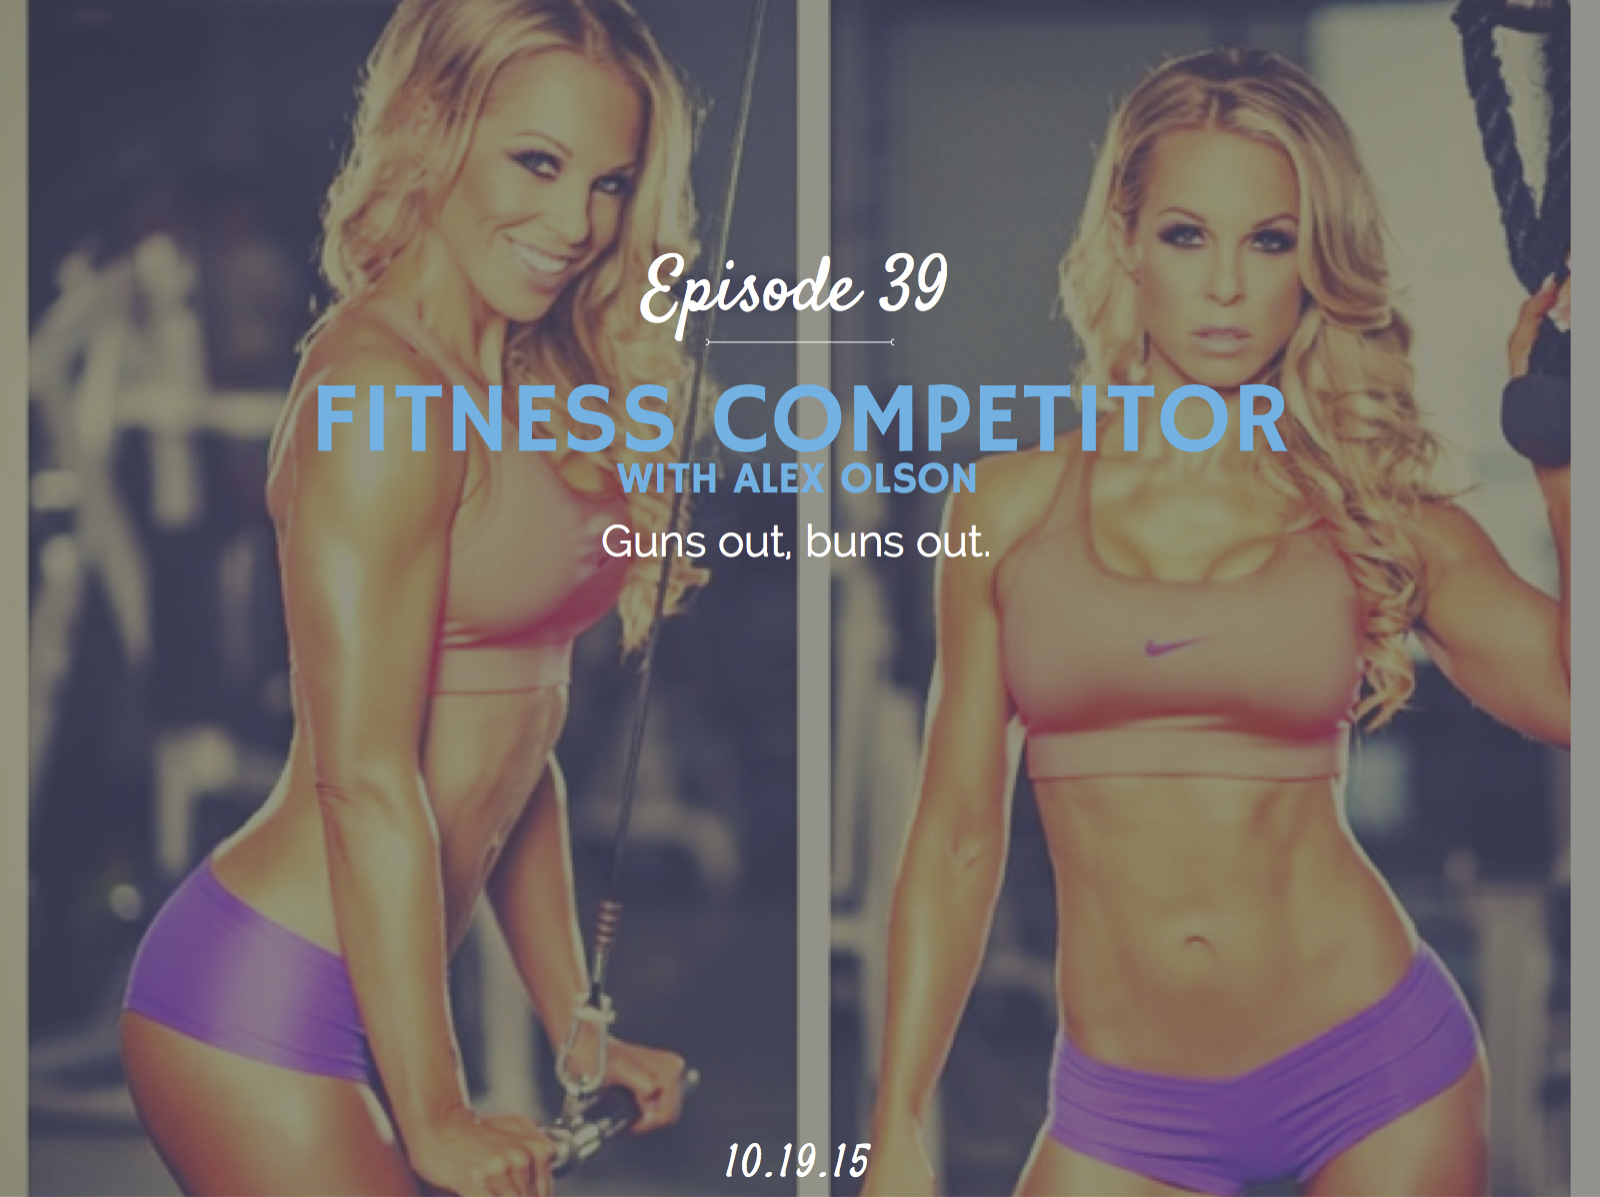 What is it like to be a female fitness competitor interview with alex olson